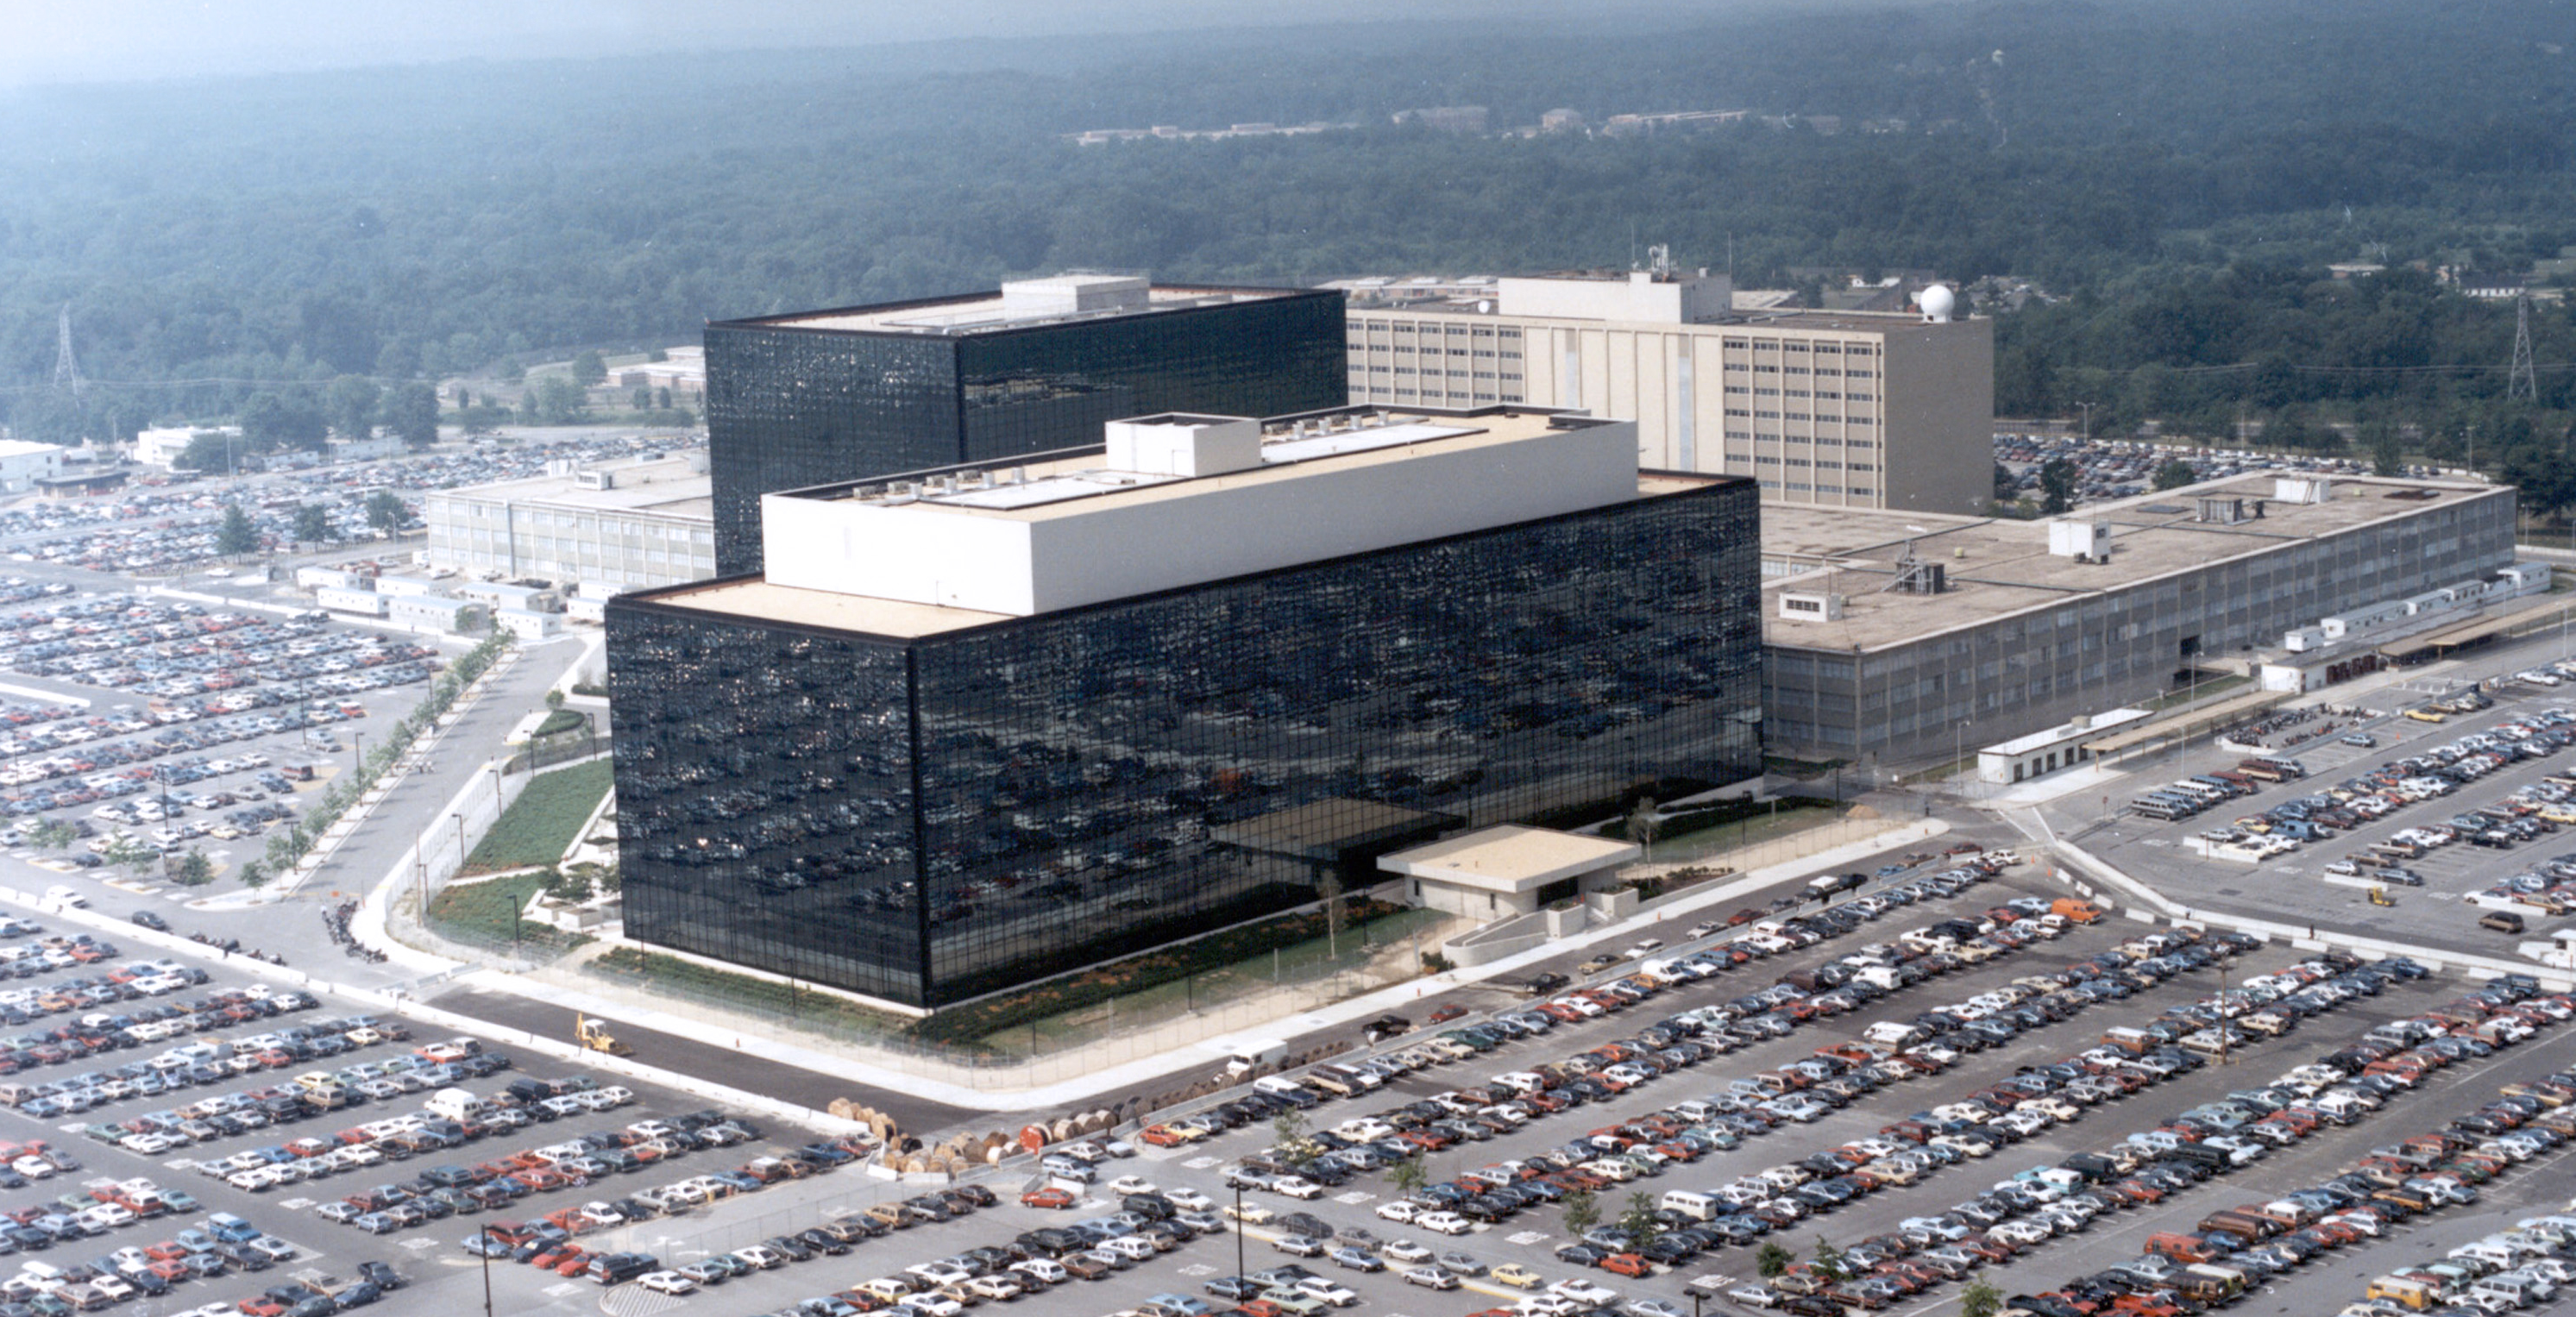 The National Security Agency's headquarters in Ft. Meade, Md., in an undated file photo.